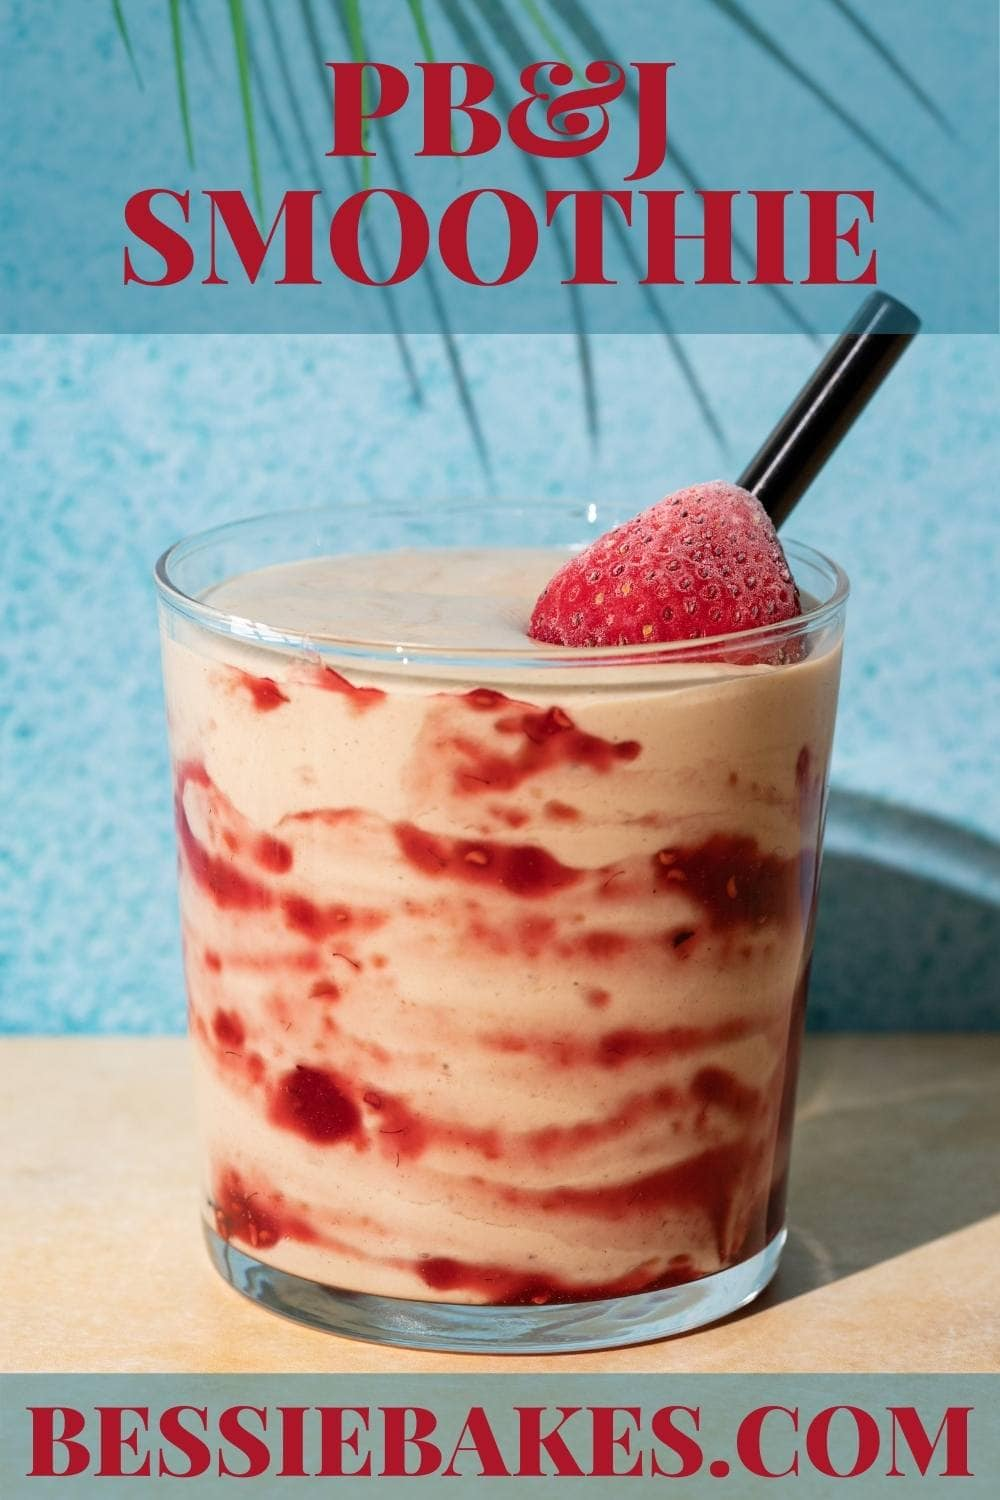 Not only is this smoothie beautiful with its jelly swirl, it's packed with protein. This drink works hard to keep you feeling fuller longer while also avoiding the sugar crash of a real PB&J.  via @bessiebakes